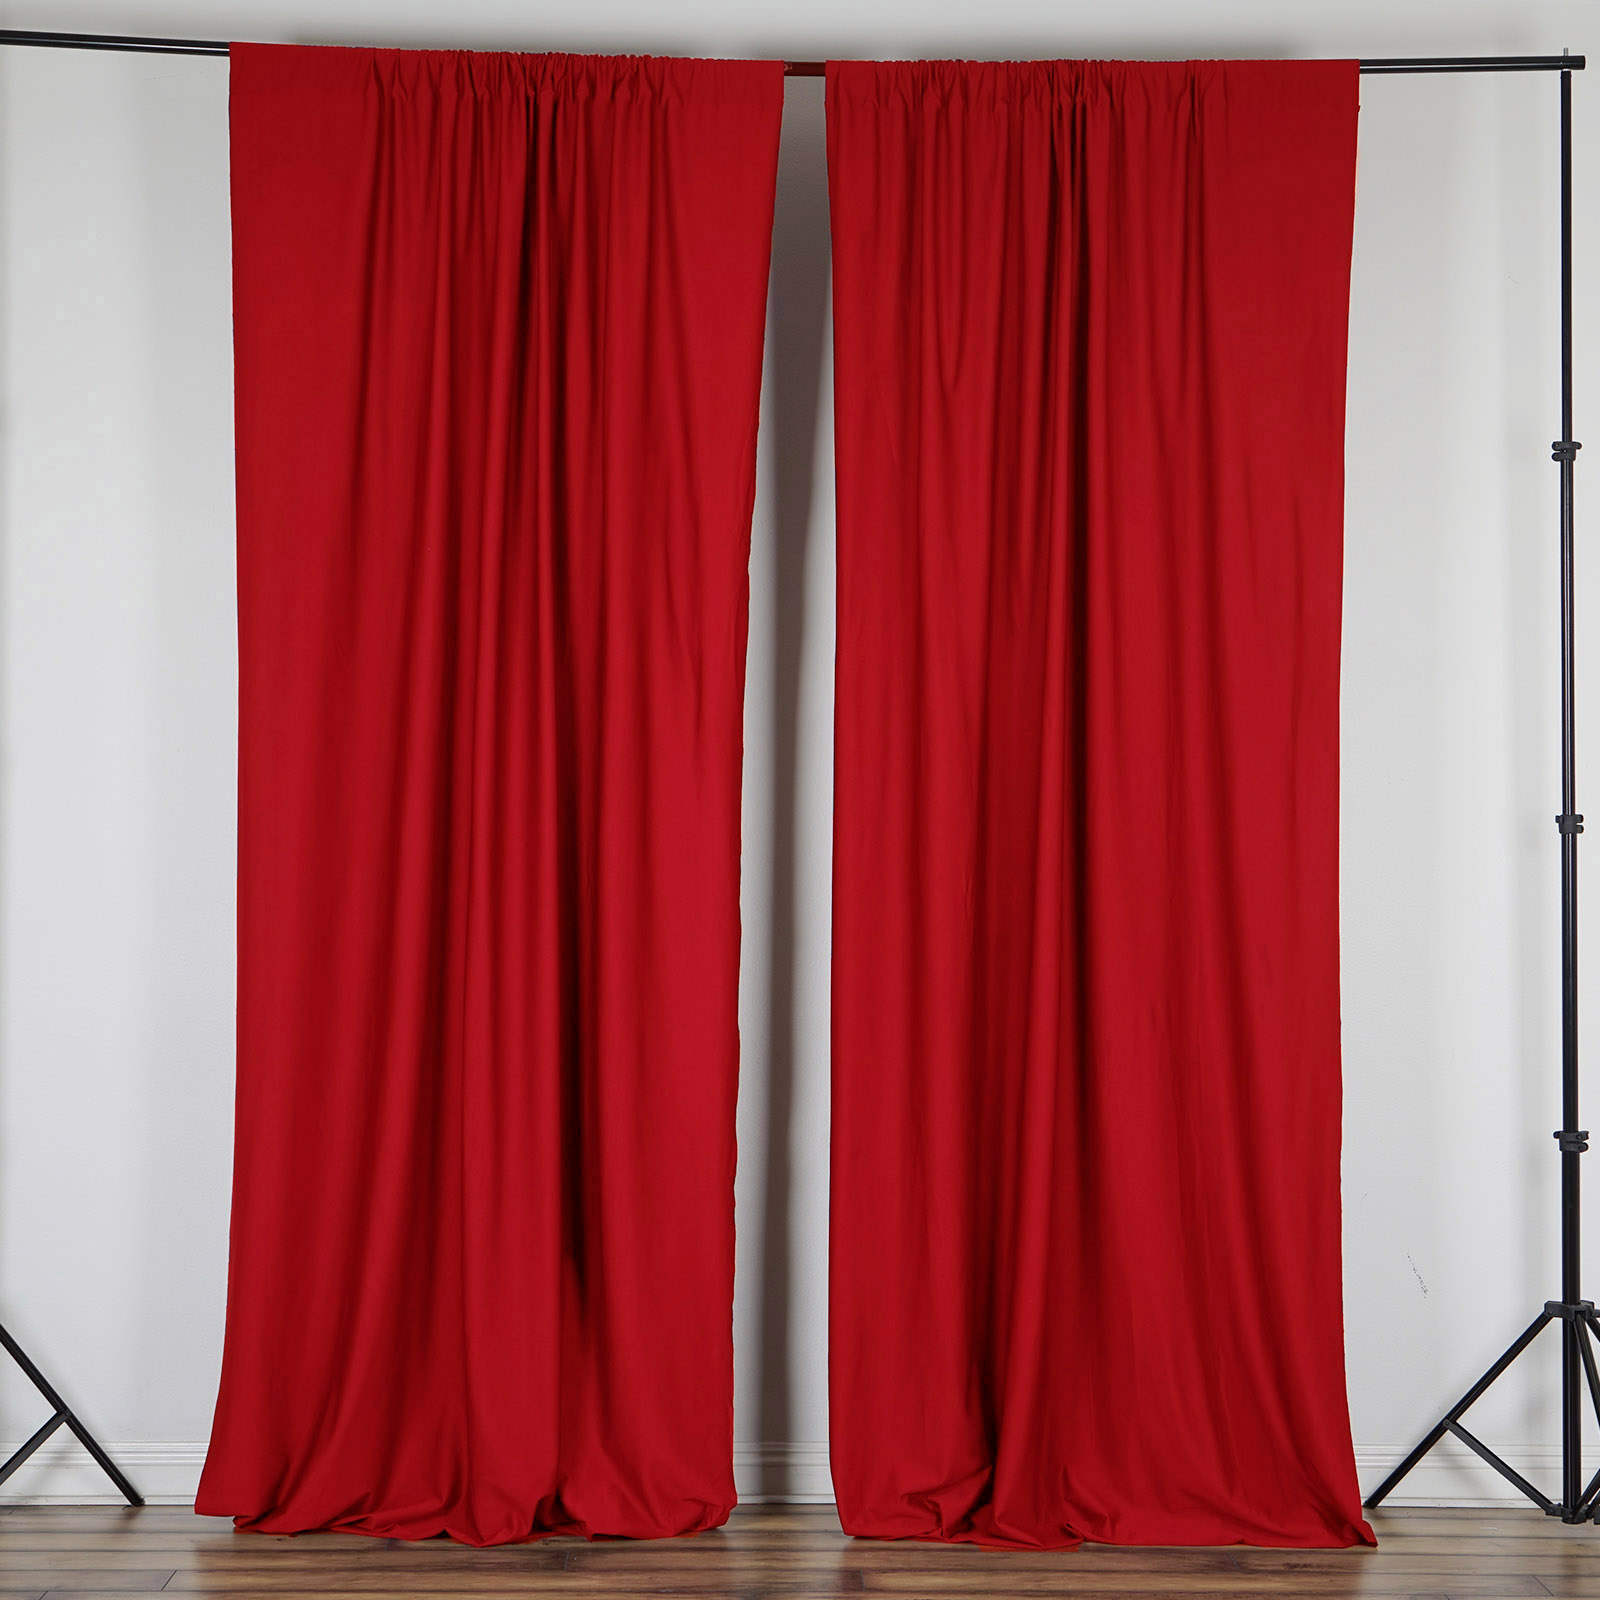 10 Ft X 10 Ft Polyester Professional BACKDROP